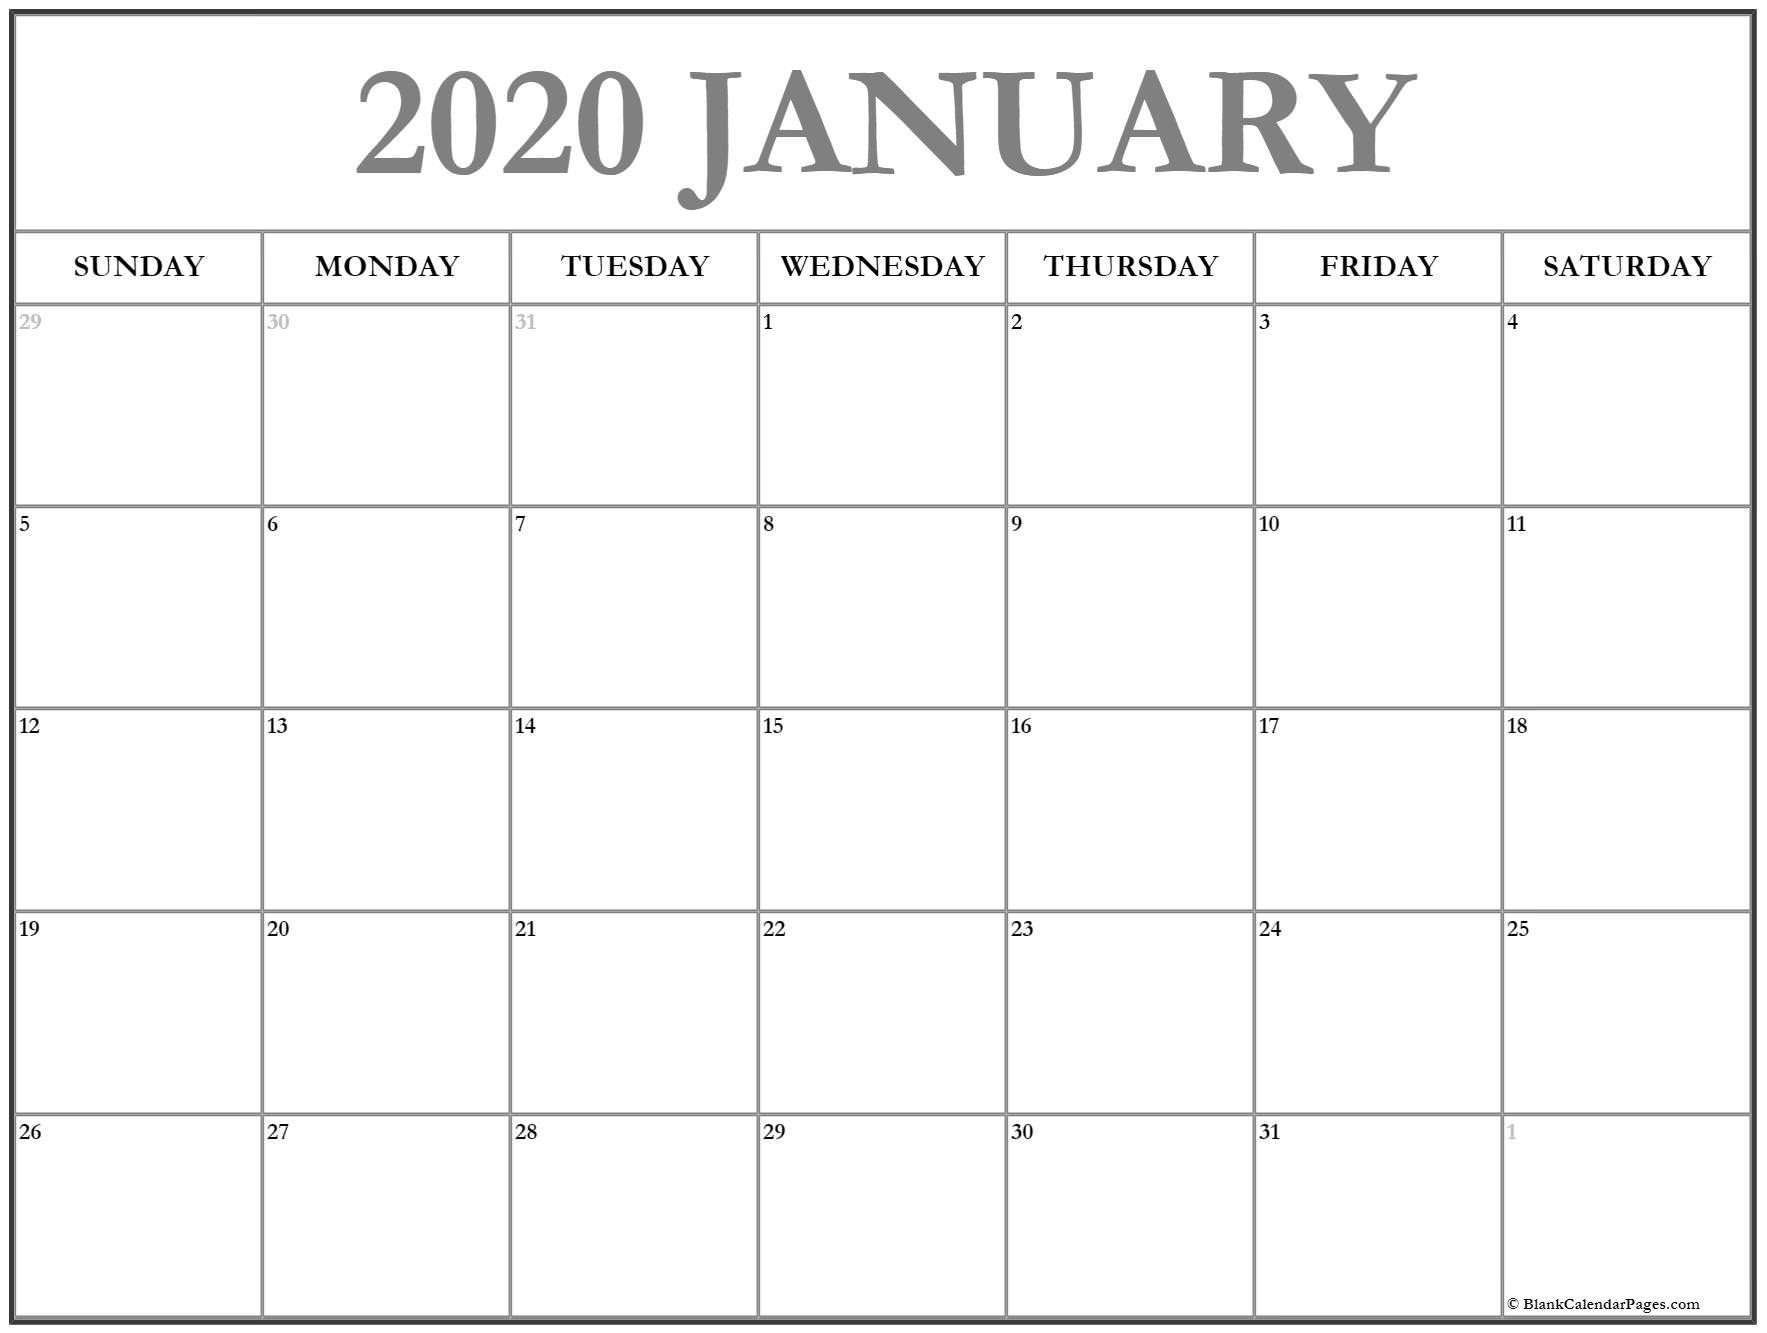 January 2020 Calendar | Free Printable Monthly Calendars-January 2020 Calendar Imom